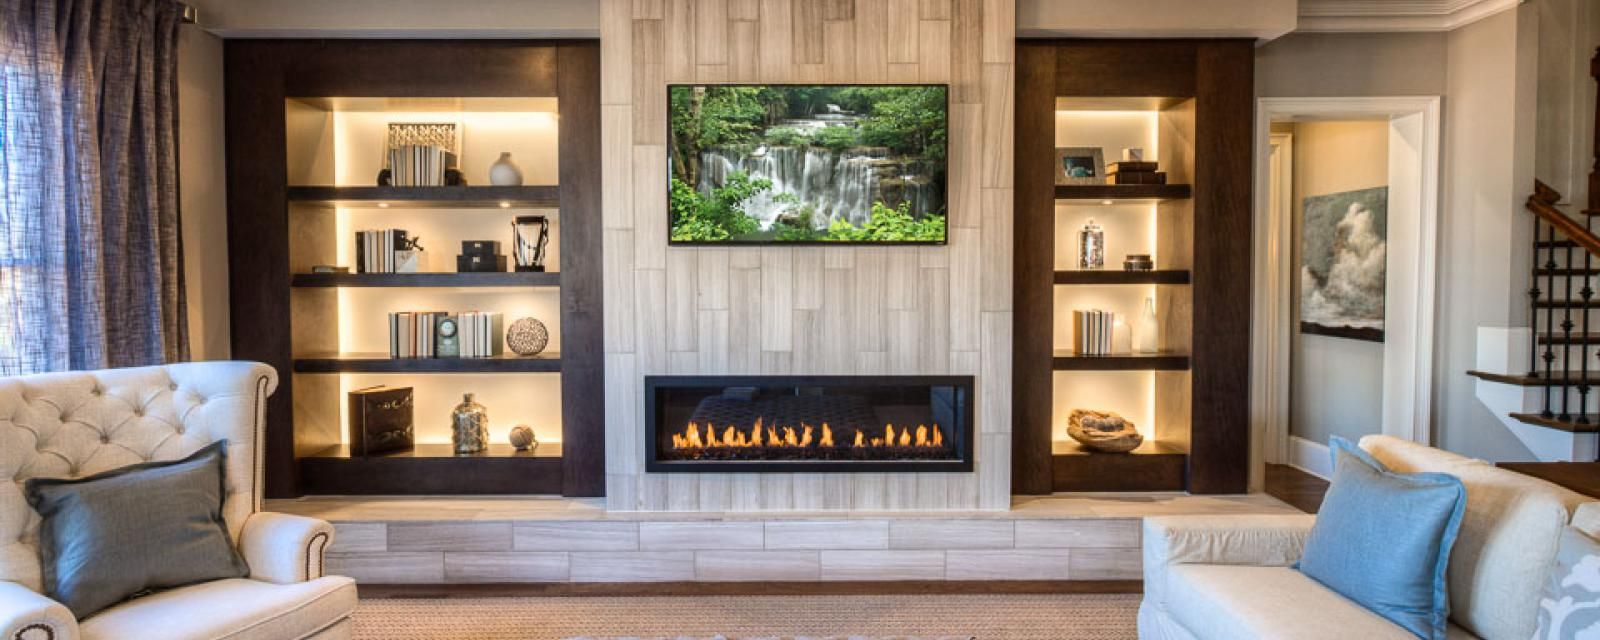 back lit built in shelves contribute a modern touch to a luxury